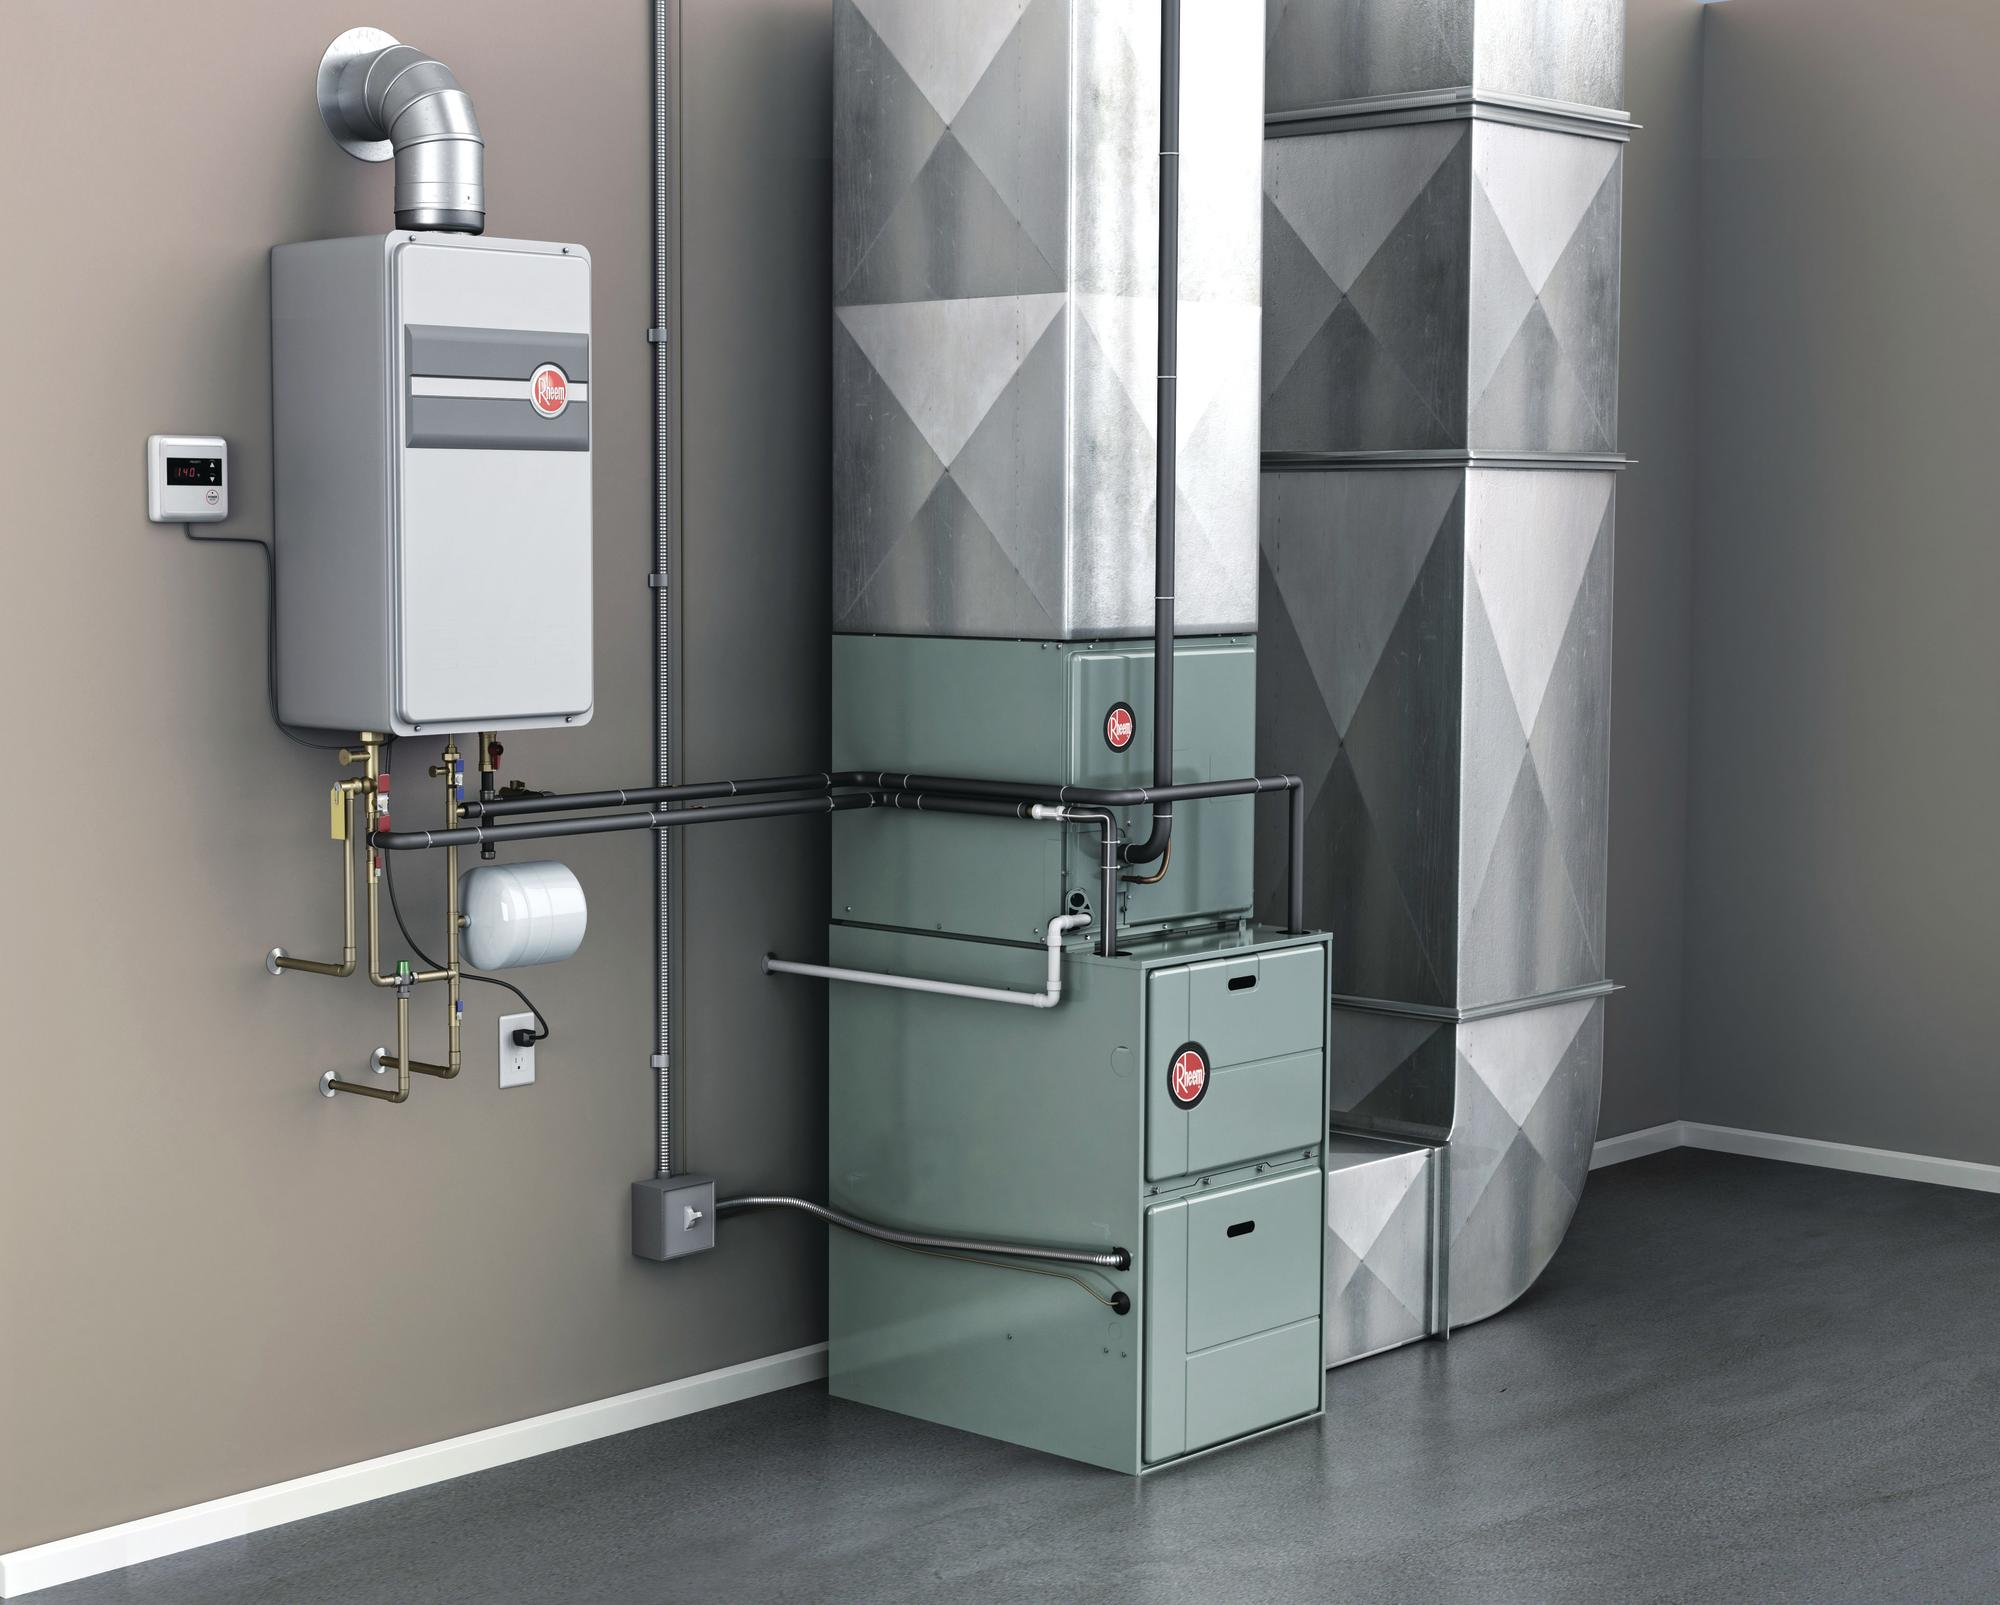 Rheem integrated hvac and water heating system powered by House heating systems